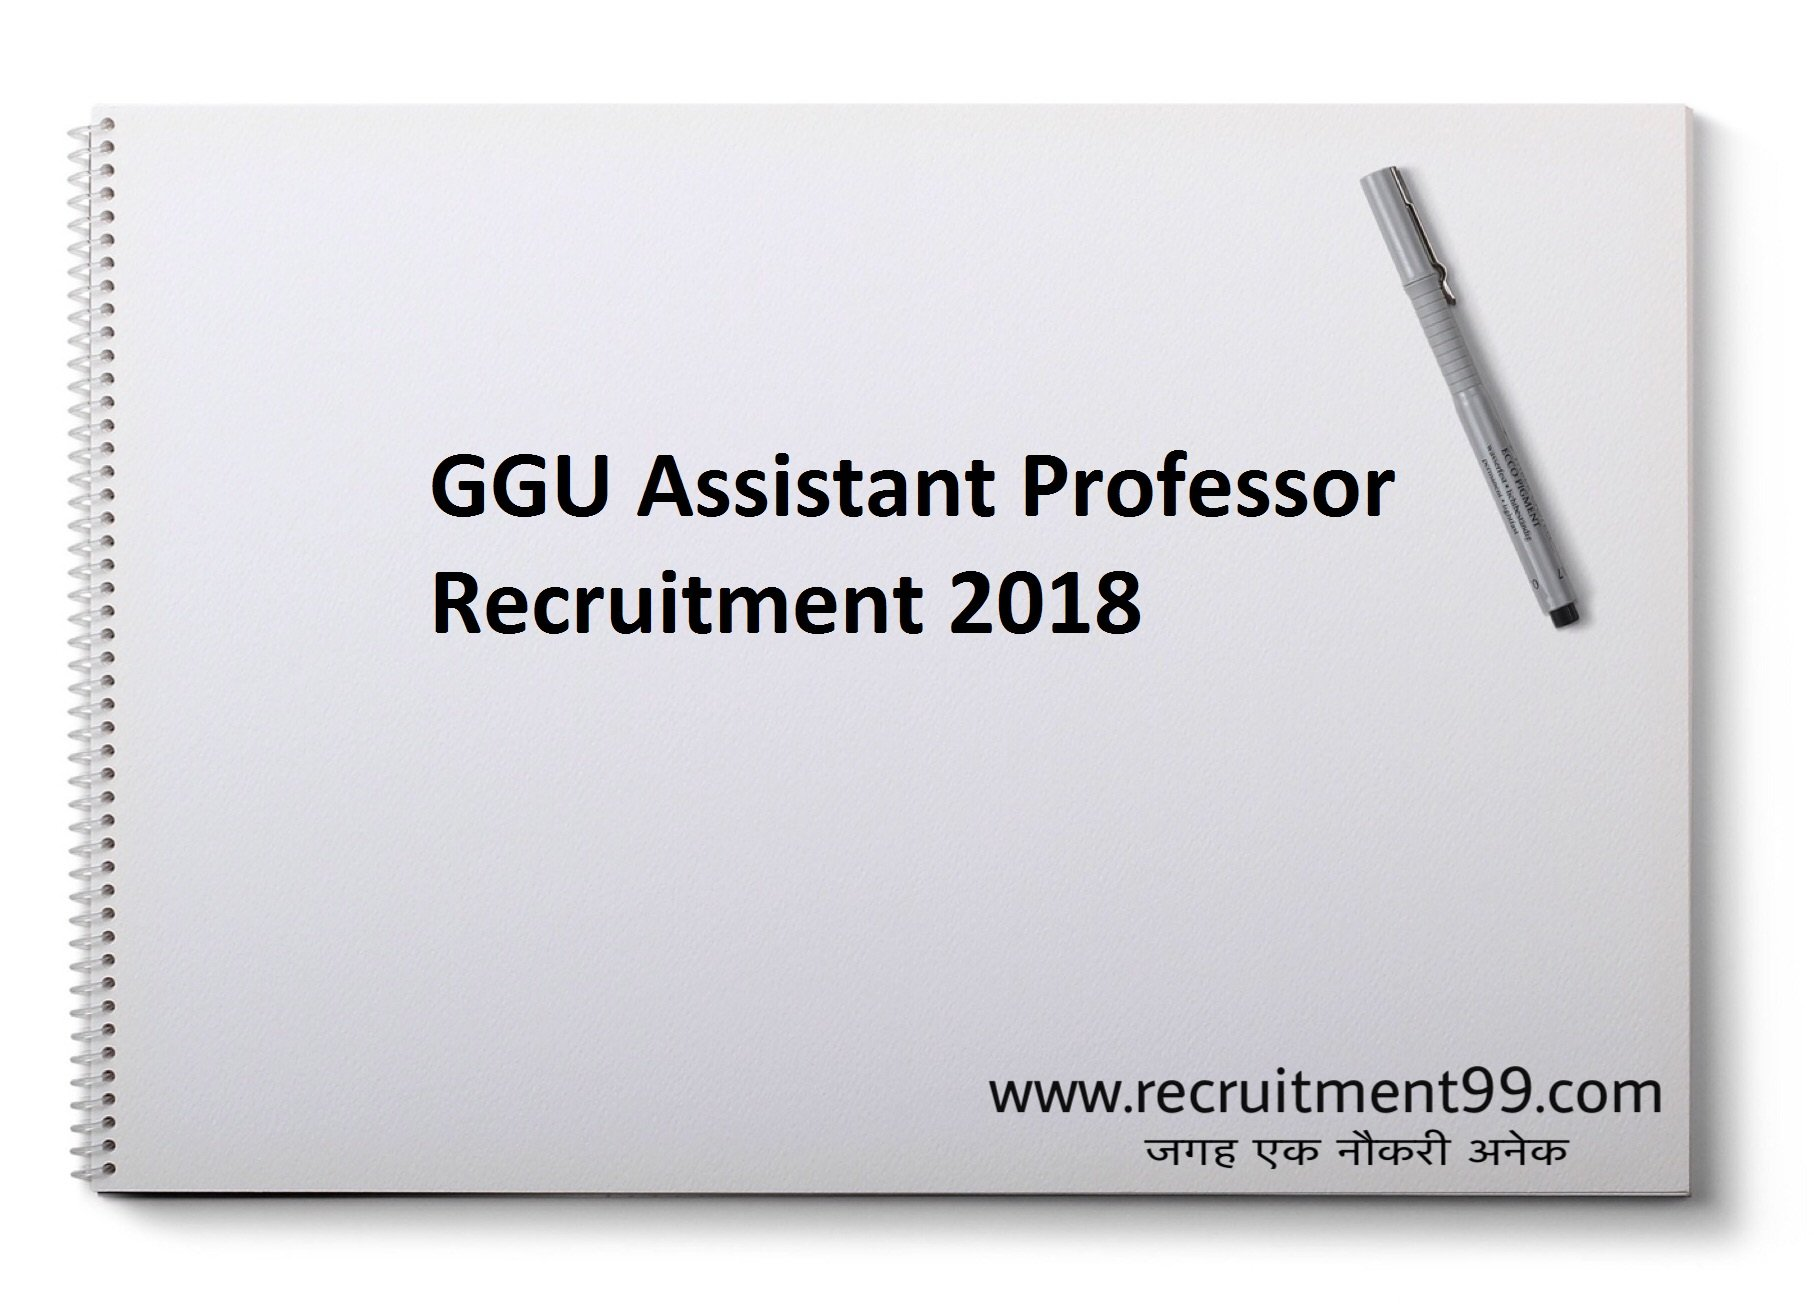 GGU Assistant Professor Recruitment Admit Card Result 2018